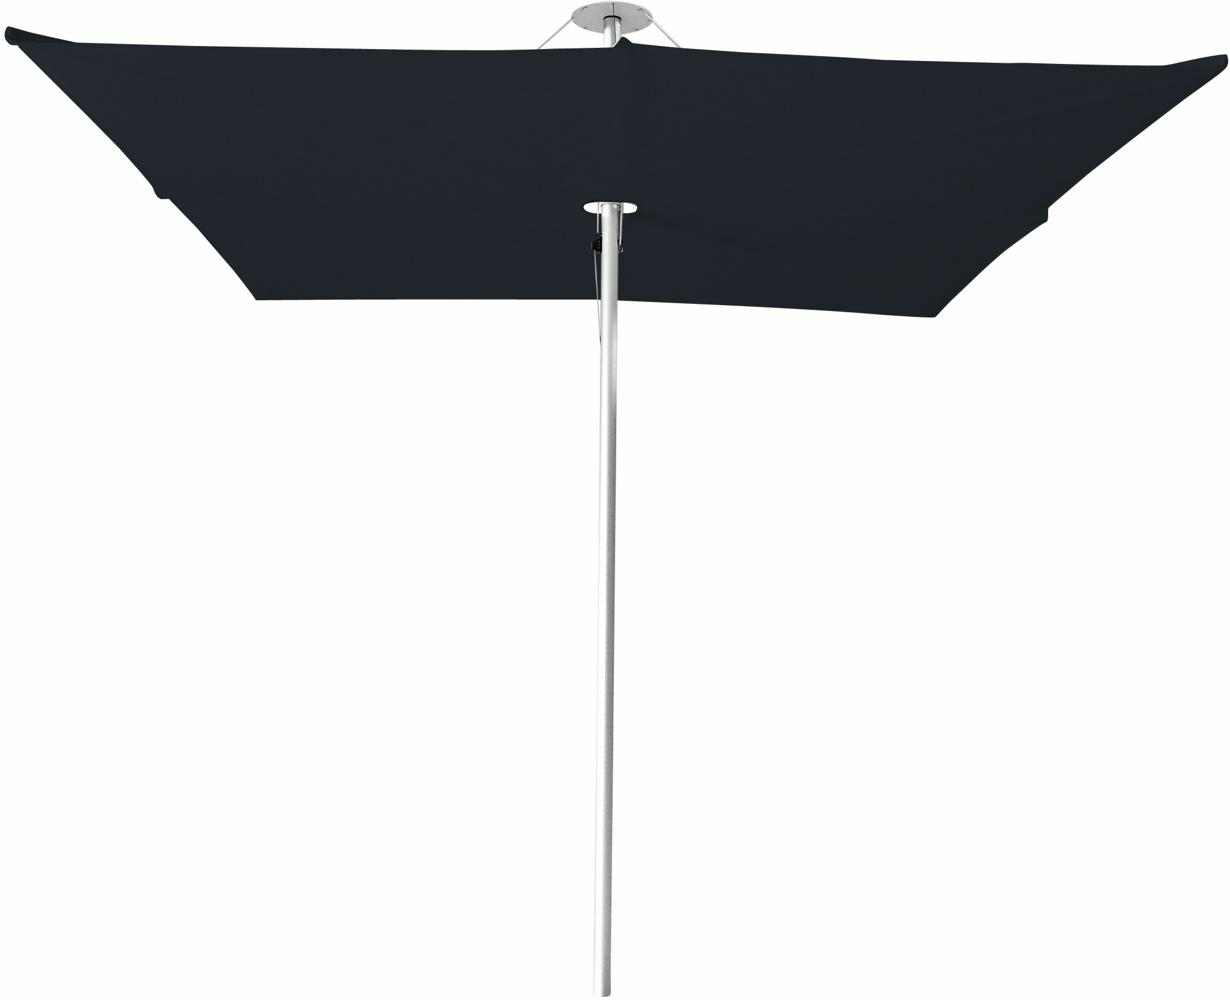 Infina canopy square 3 m in colour Black